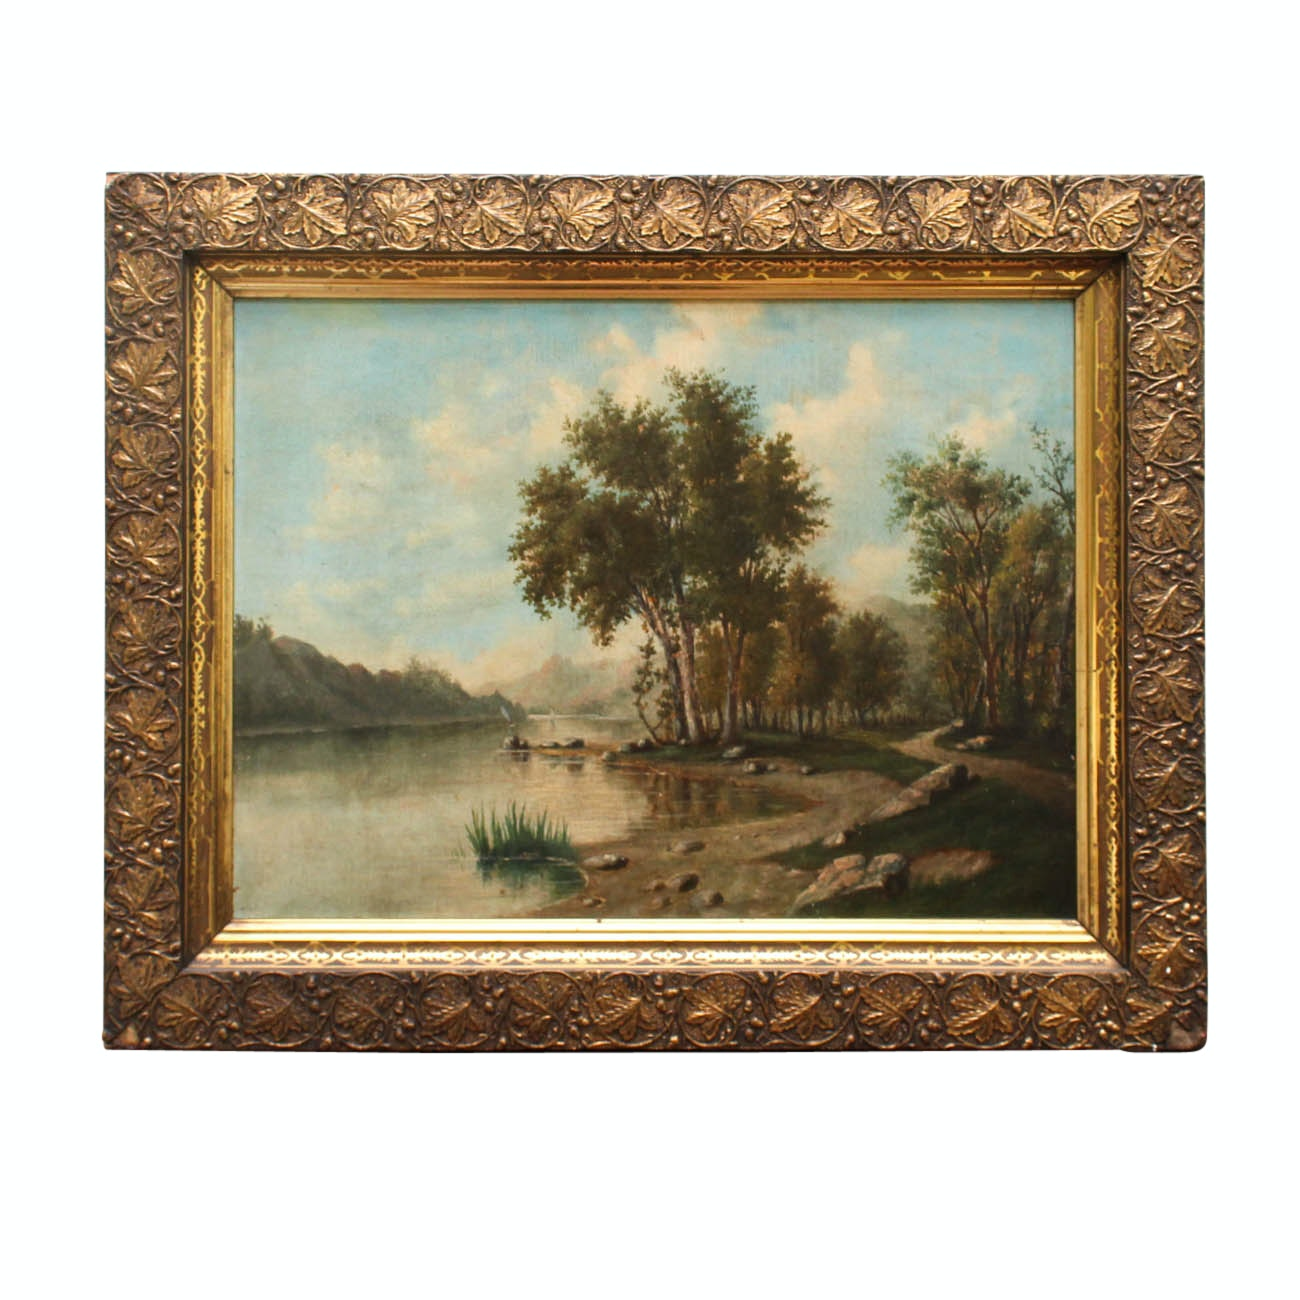 Original Antique Oil Painting of River Scene